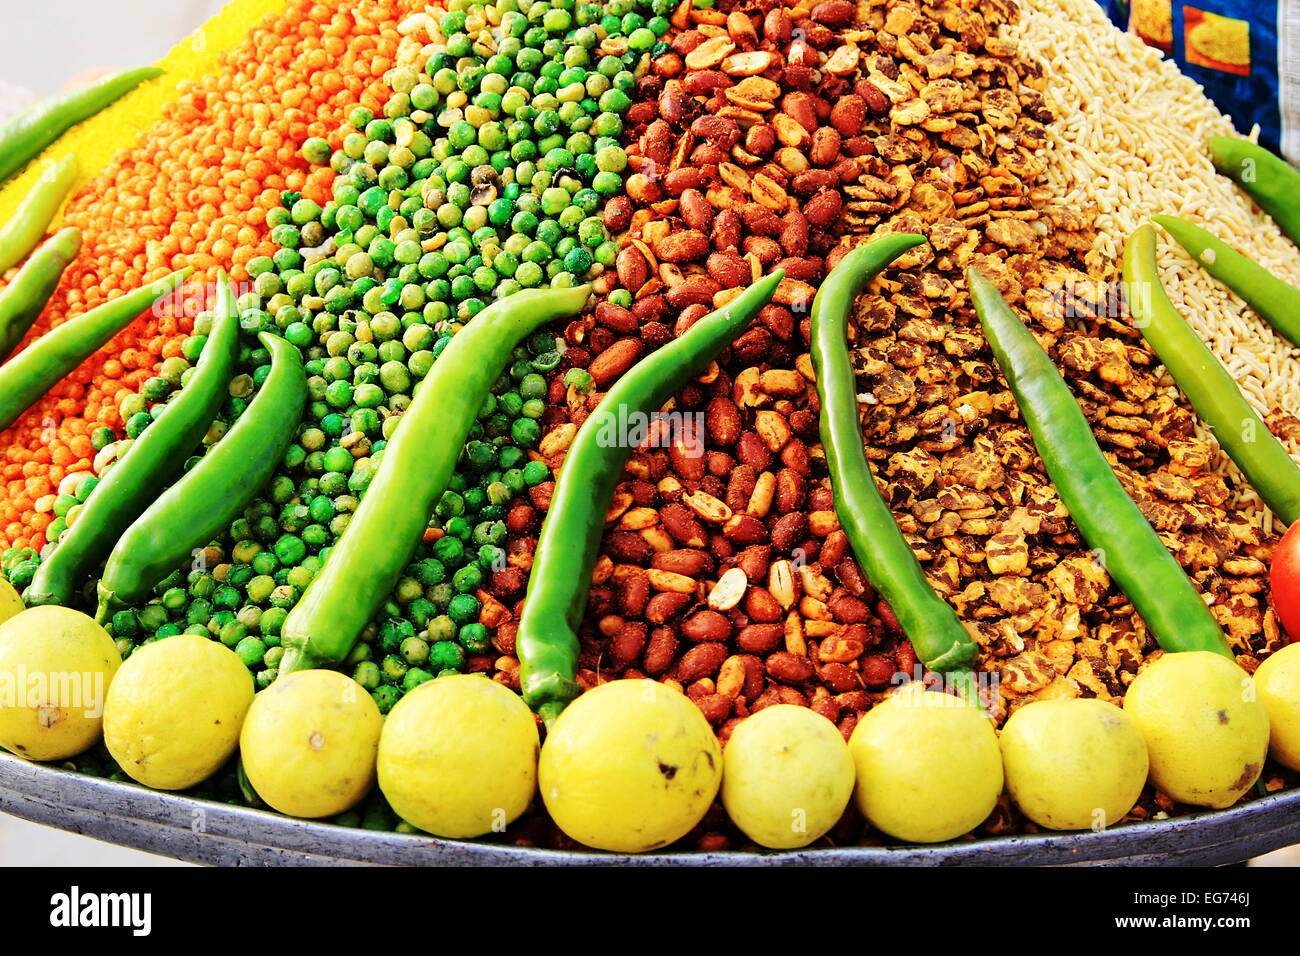 Tray of orange, green, red, yellow, white chats containing spiced peanuts, green peas, beans, etc. decorated with - Stock Image